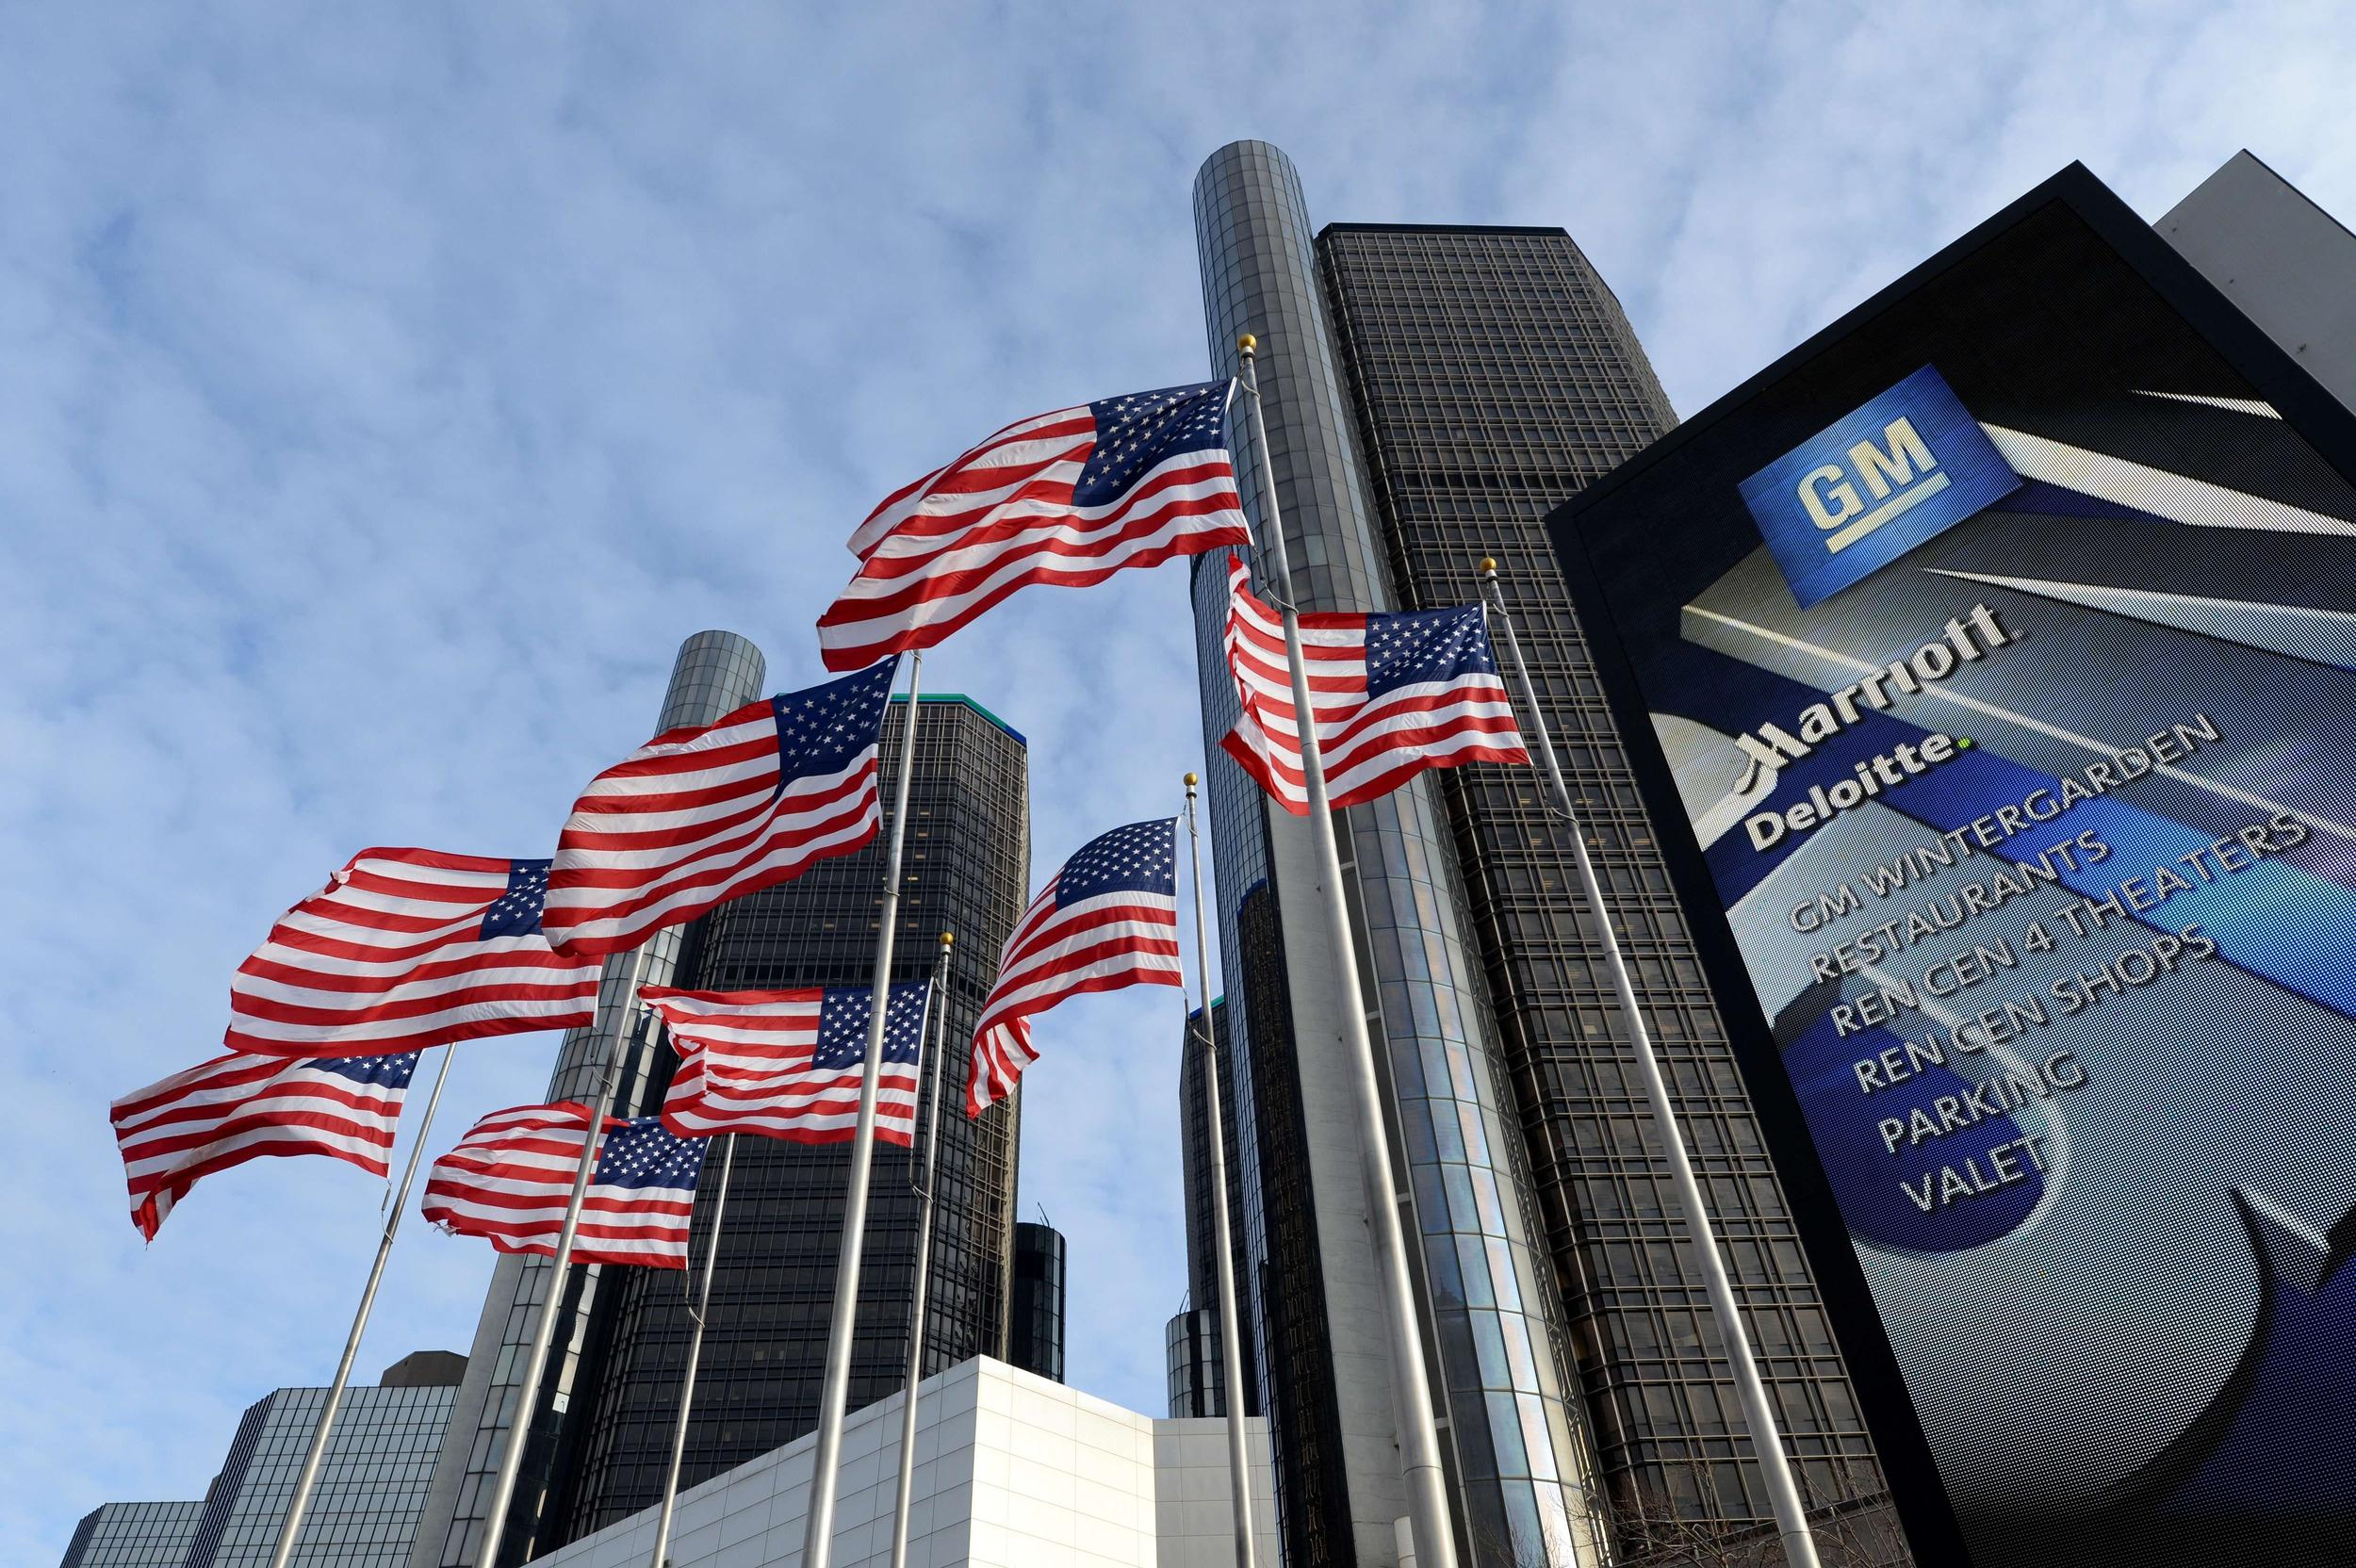 Gm Rated Worst Automaker To Deal With By Suppliers Nbc News